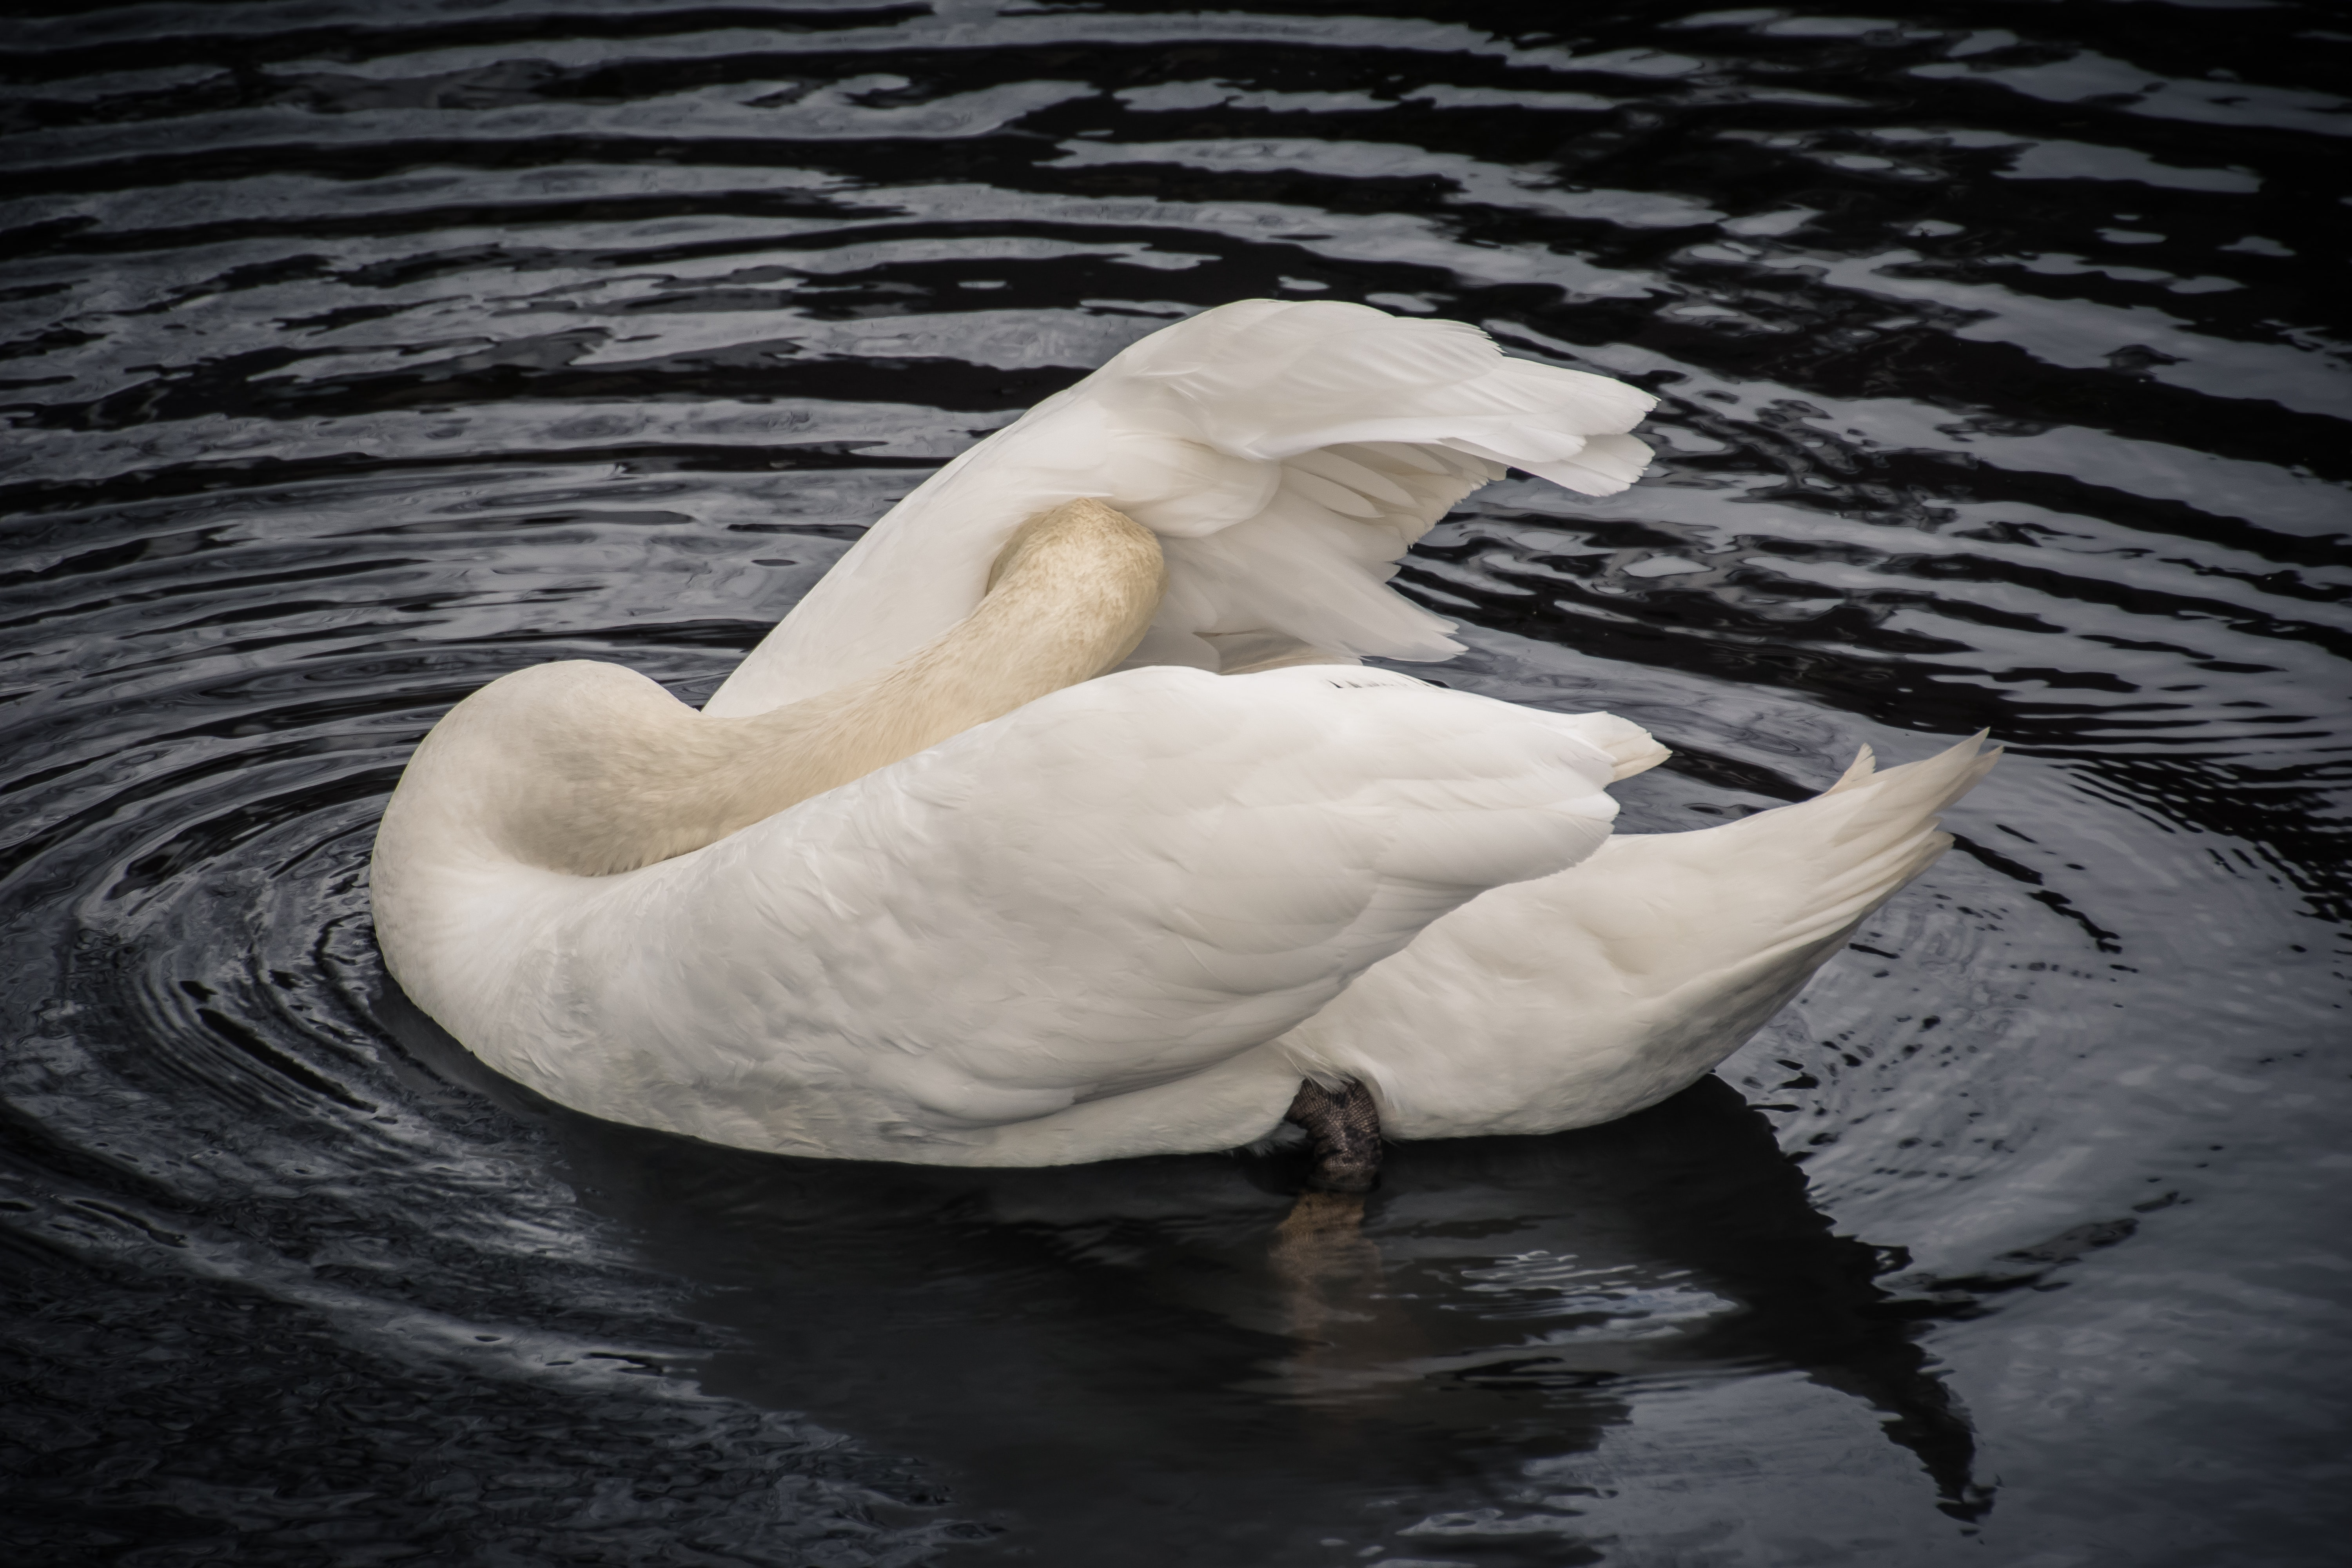 Swan preens its feathers in the water